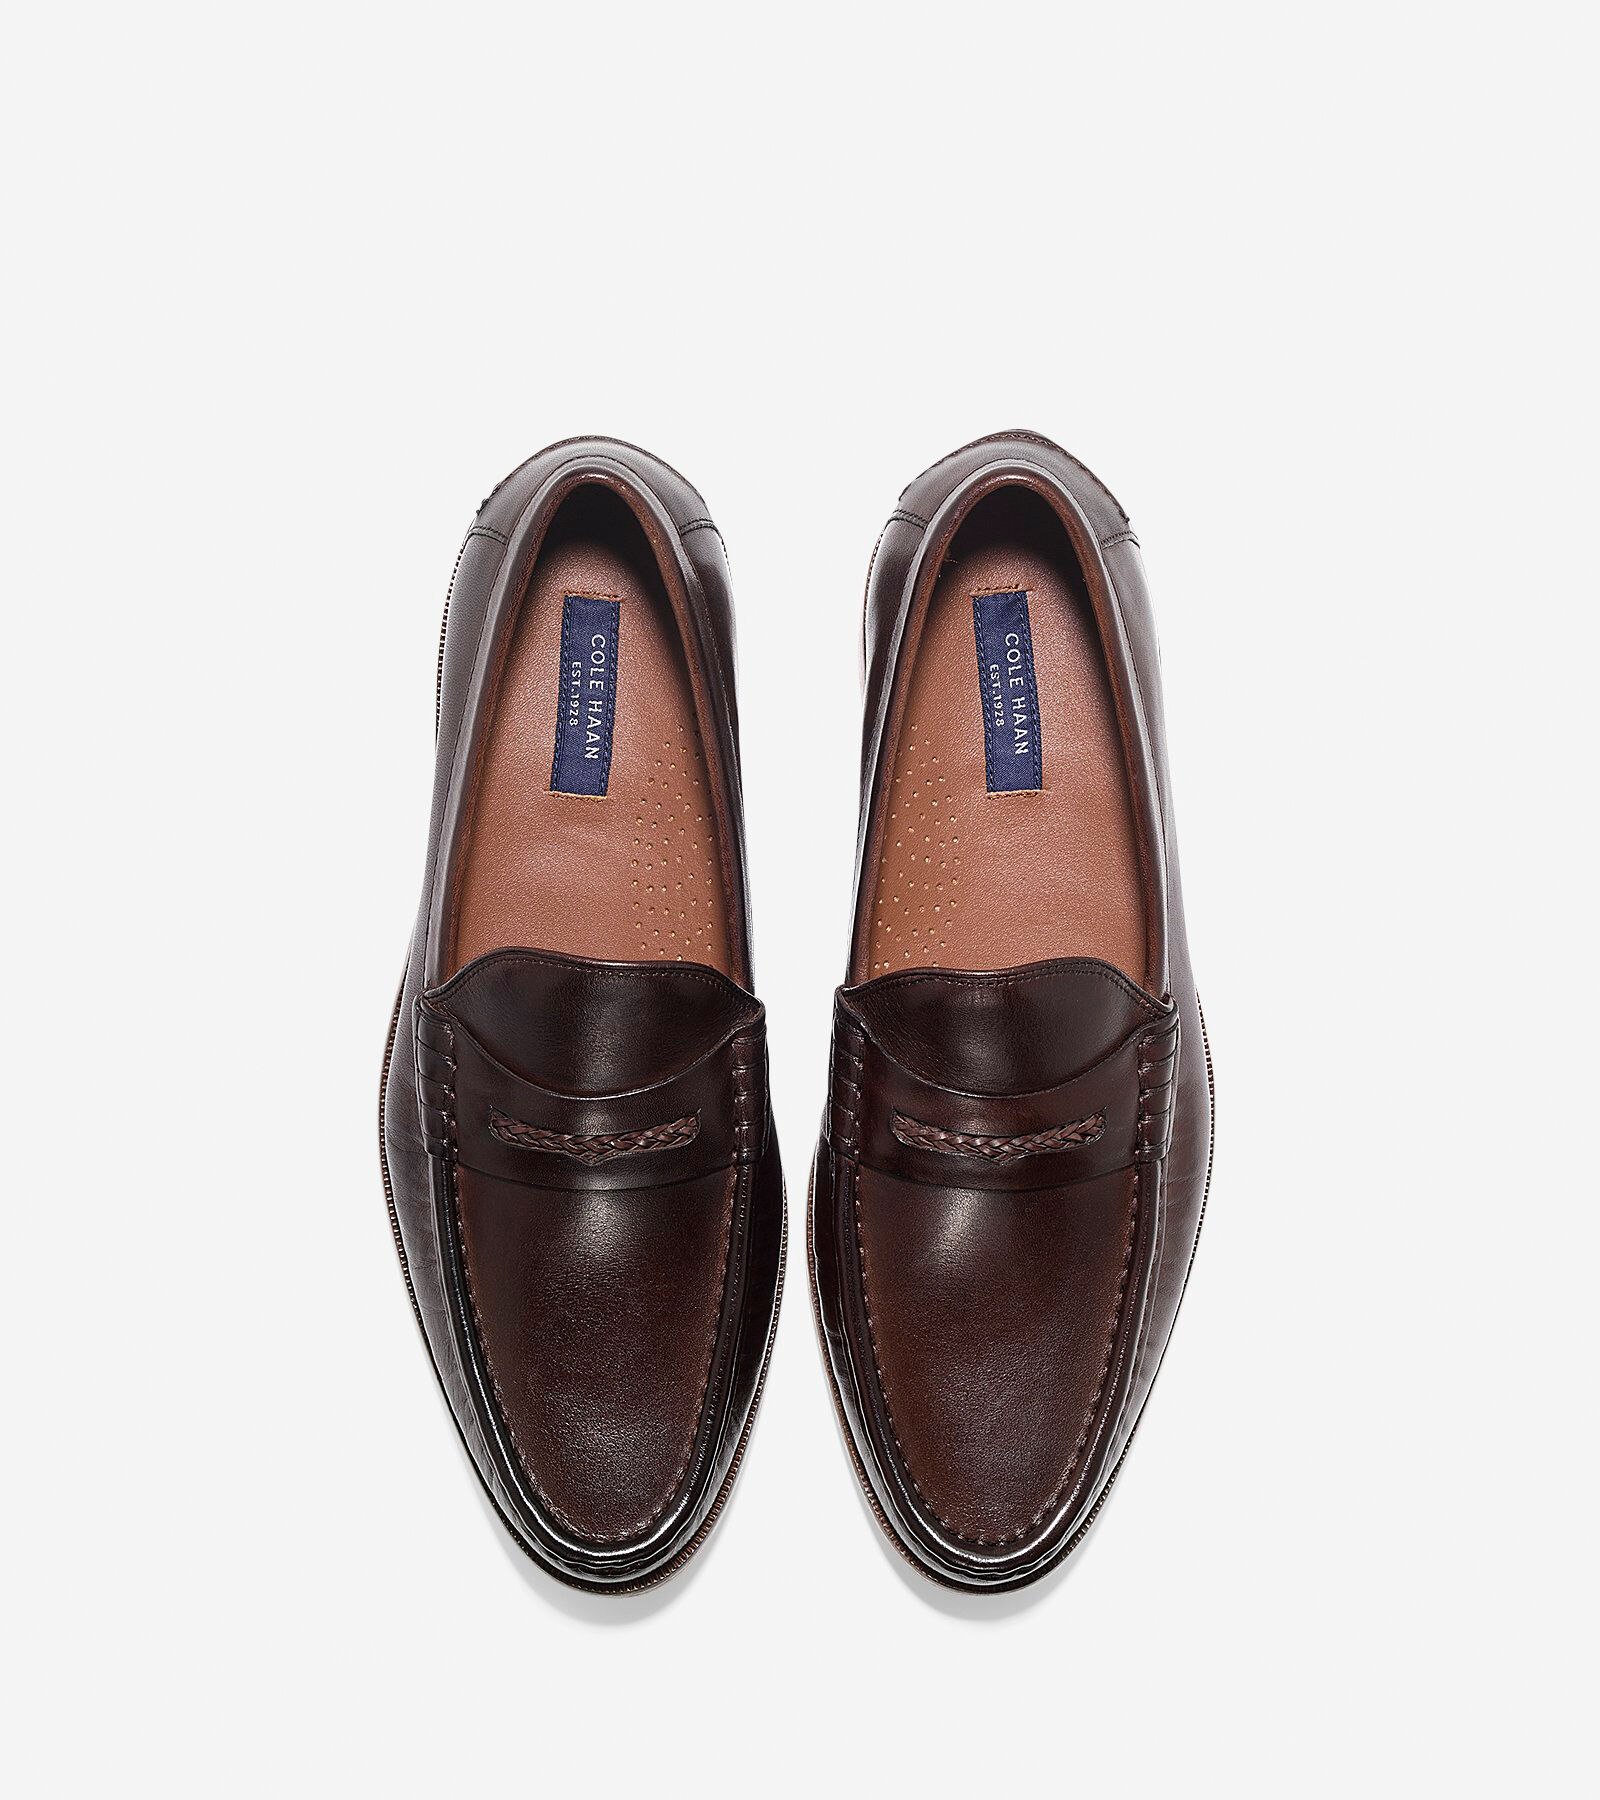 Cole Haan Men's Pinch Friday C... buy cheap hot sale comfortable cheap online buy cheap best seller free shipping manchester great sale with paypal cheap price dBVTCM